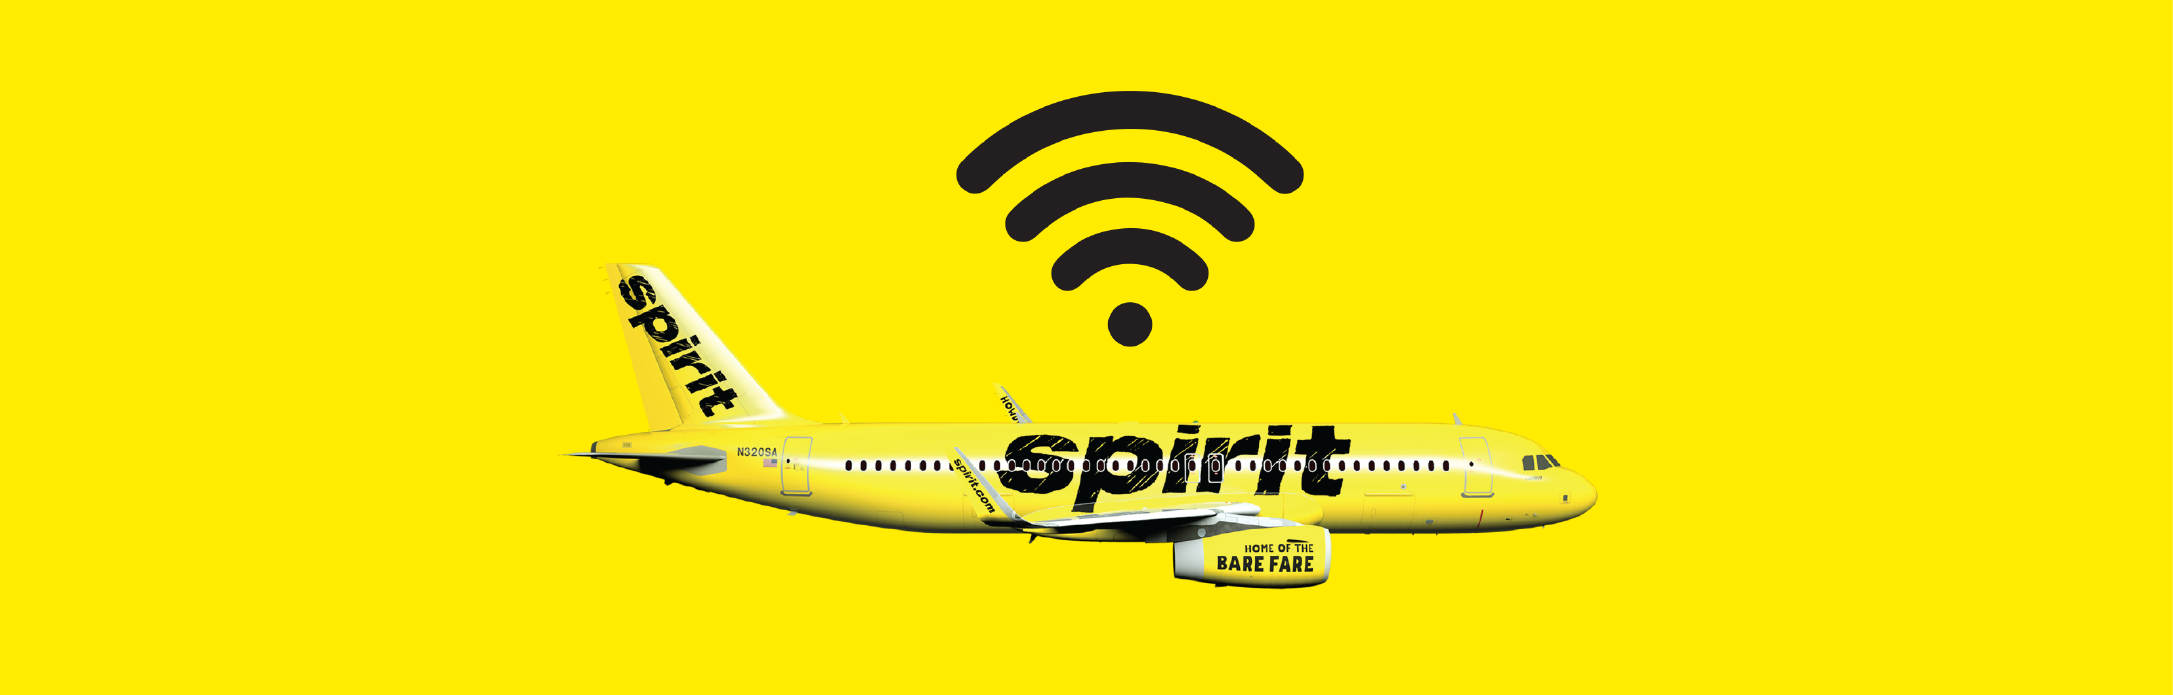 Spirit Airlines Is Installing Wifi On All Aircraft Starting November Completion Summer Of 2019 Loyaltylobby